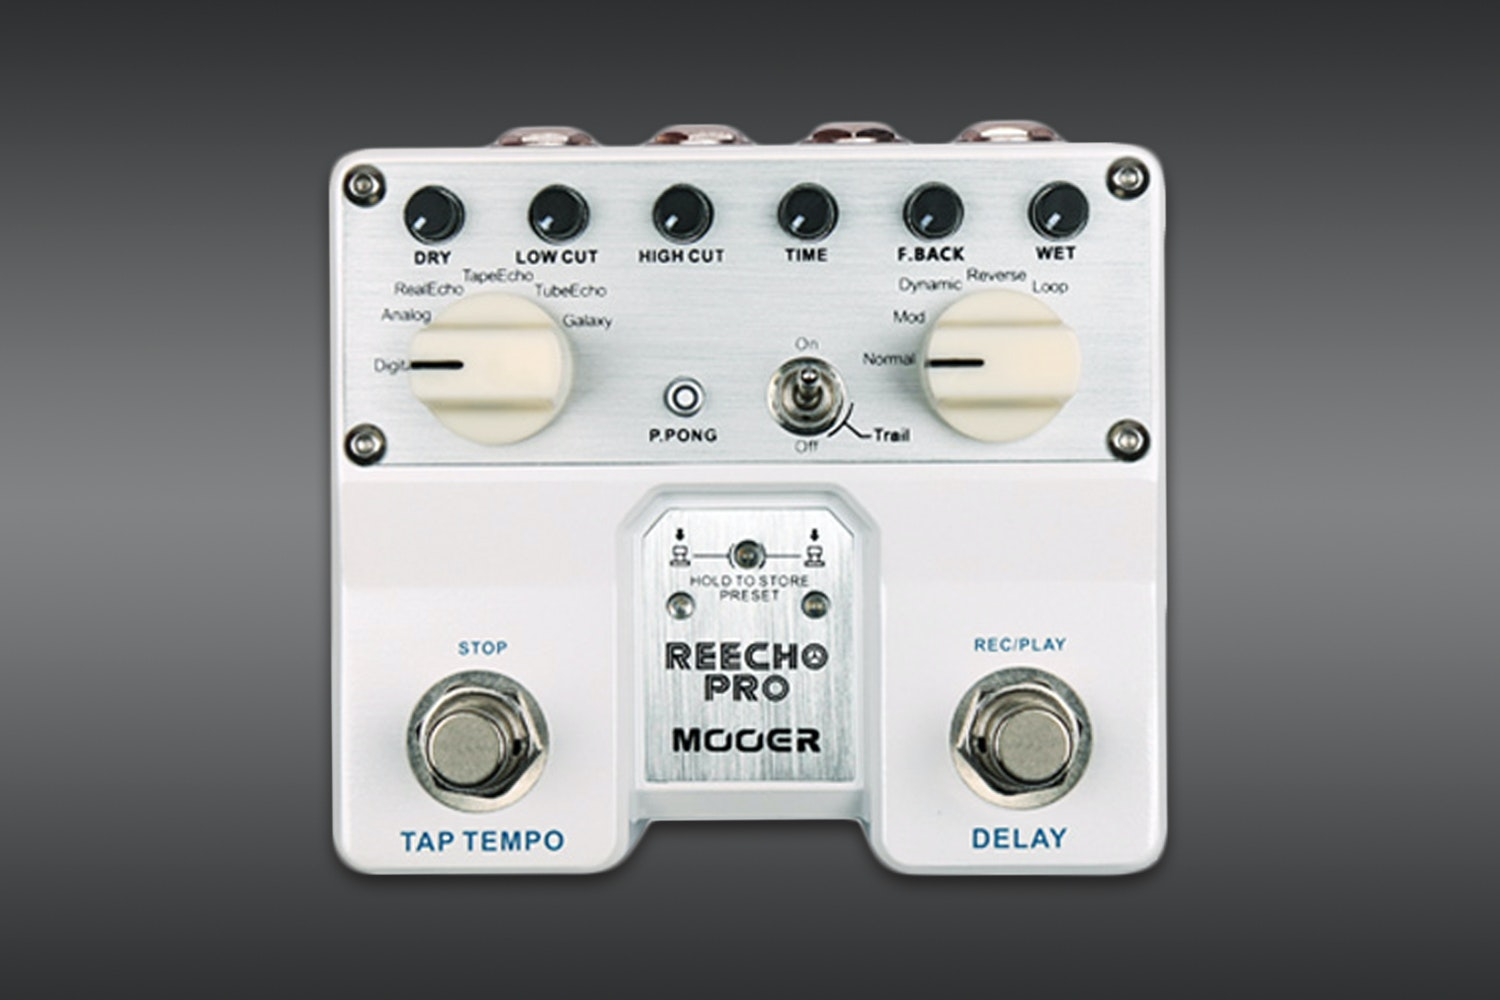 Mooer Twin Series Pedals